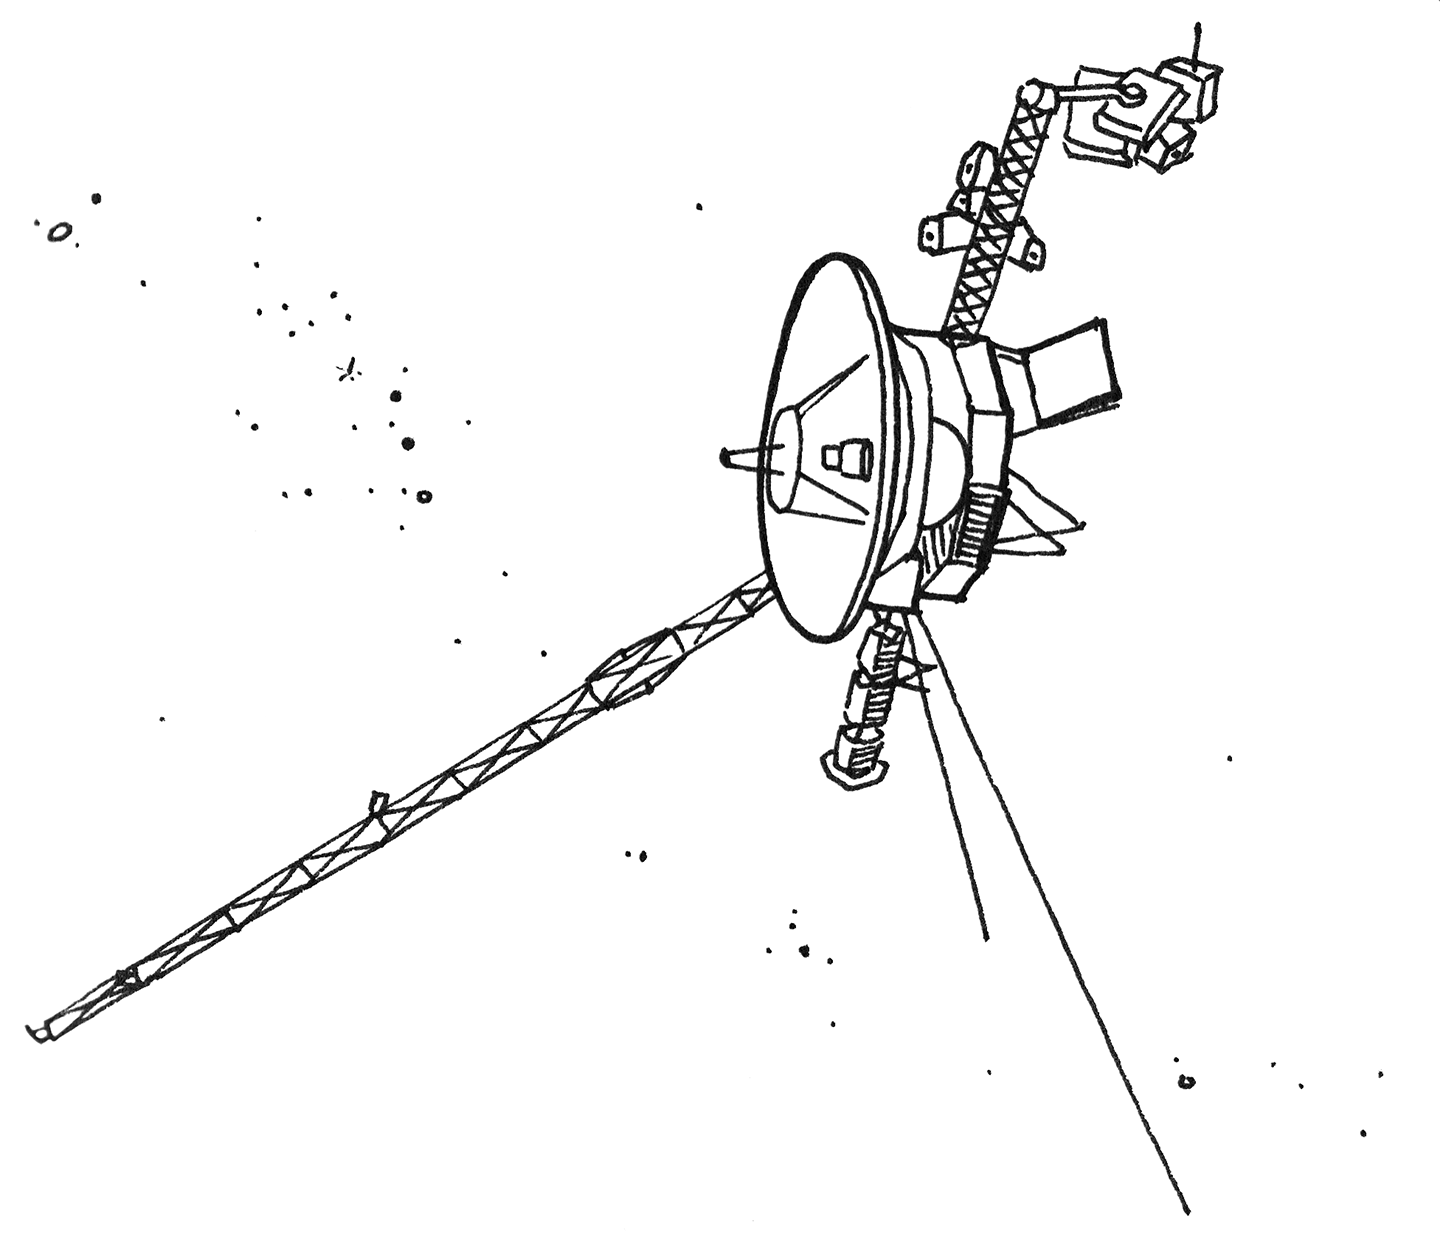 diagram of a space probe